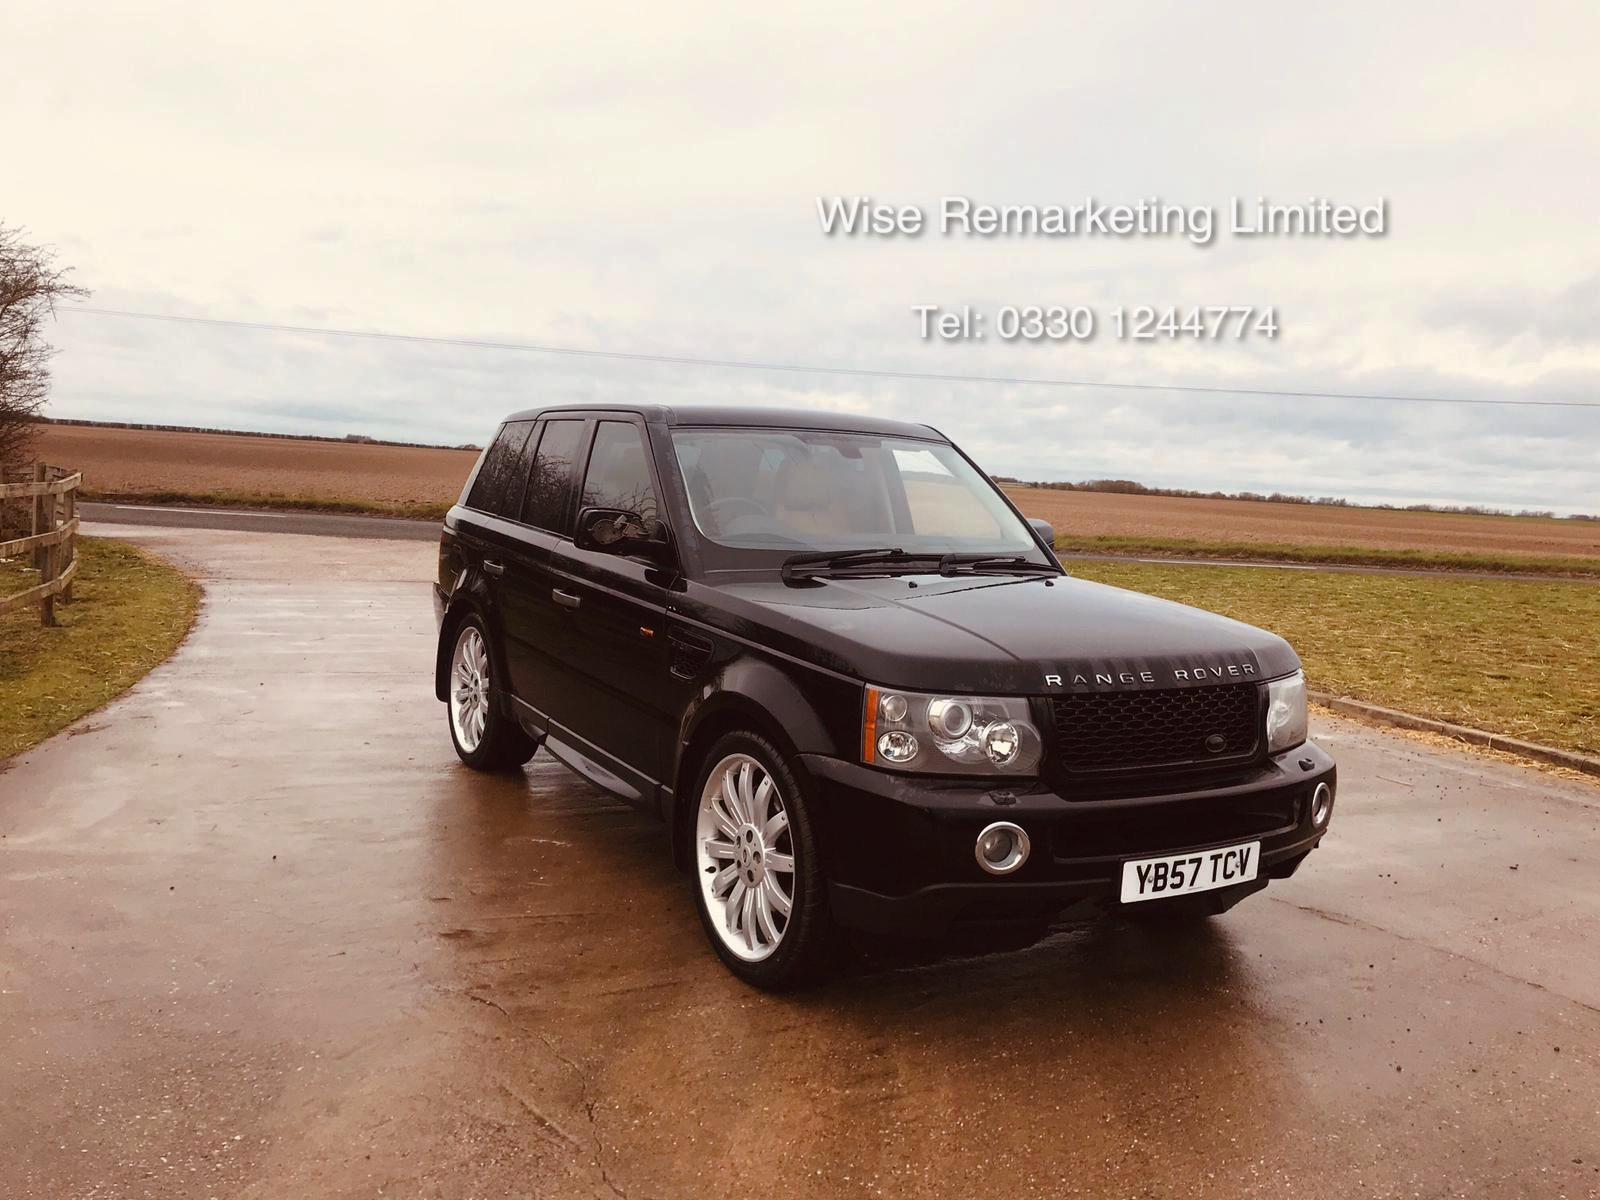 Range Rover Sport 2.7 TDV6 HSE Auto - 2008 Model - Cream Leather - Sat Nav - Heated Seats - Image 2 of 19